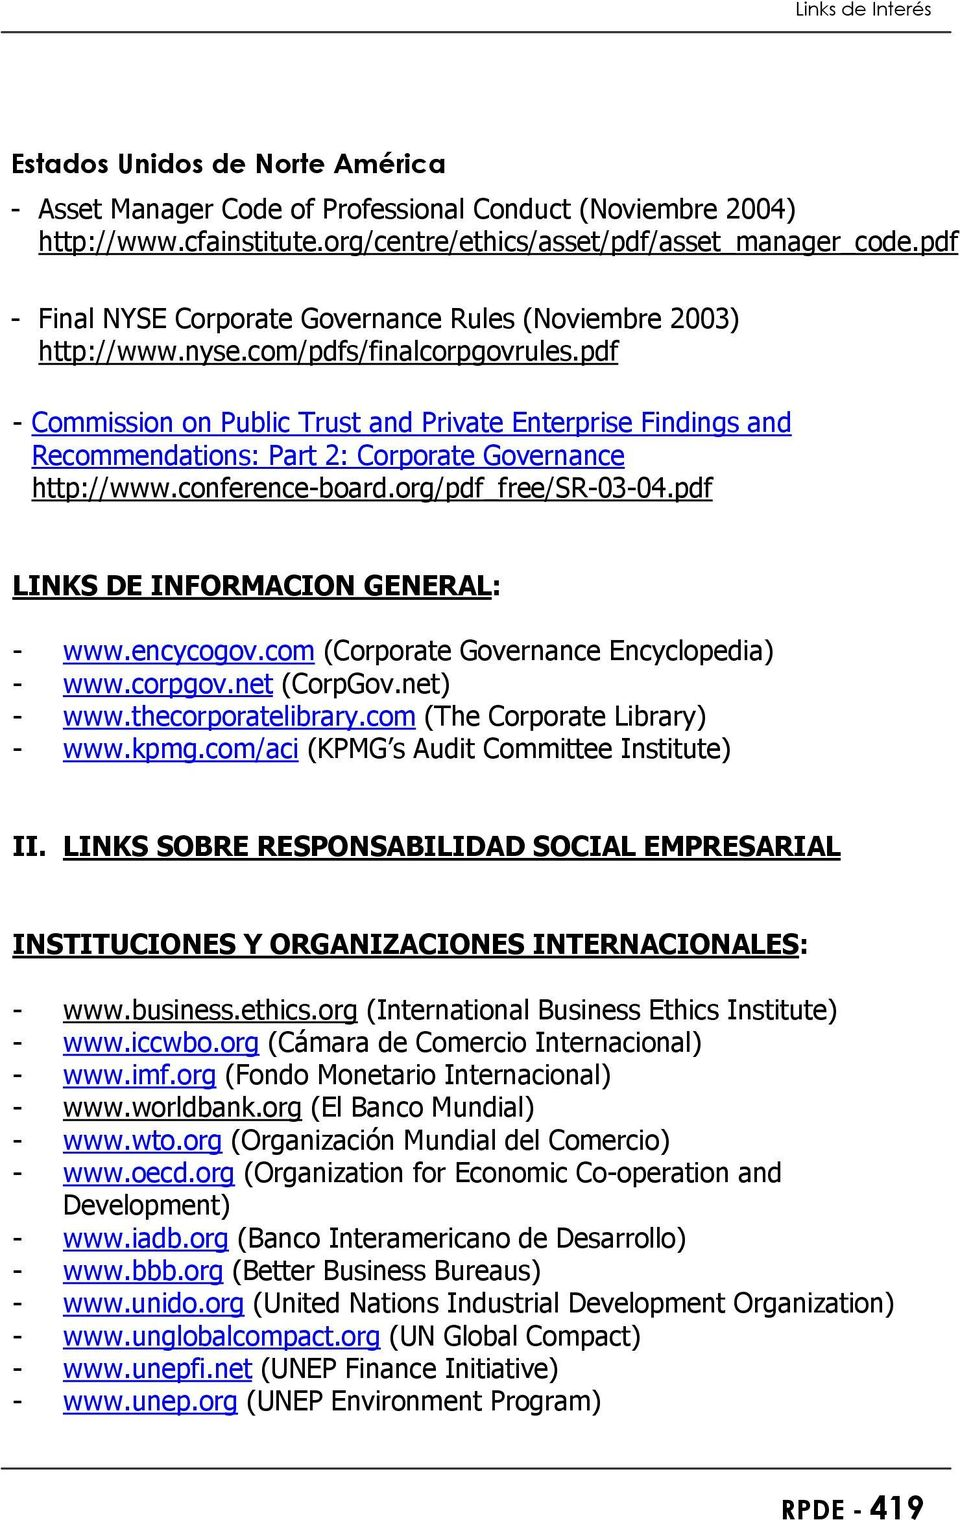 pdf - Commission on Public Trust and Private Enterprise Findings and Recommendations: Part 2: Corporate Governance http://www.conference-board.org/pdf_free/sr-03-04.